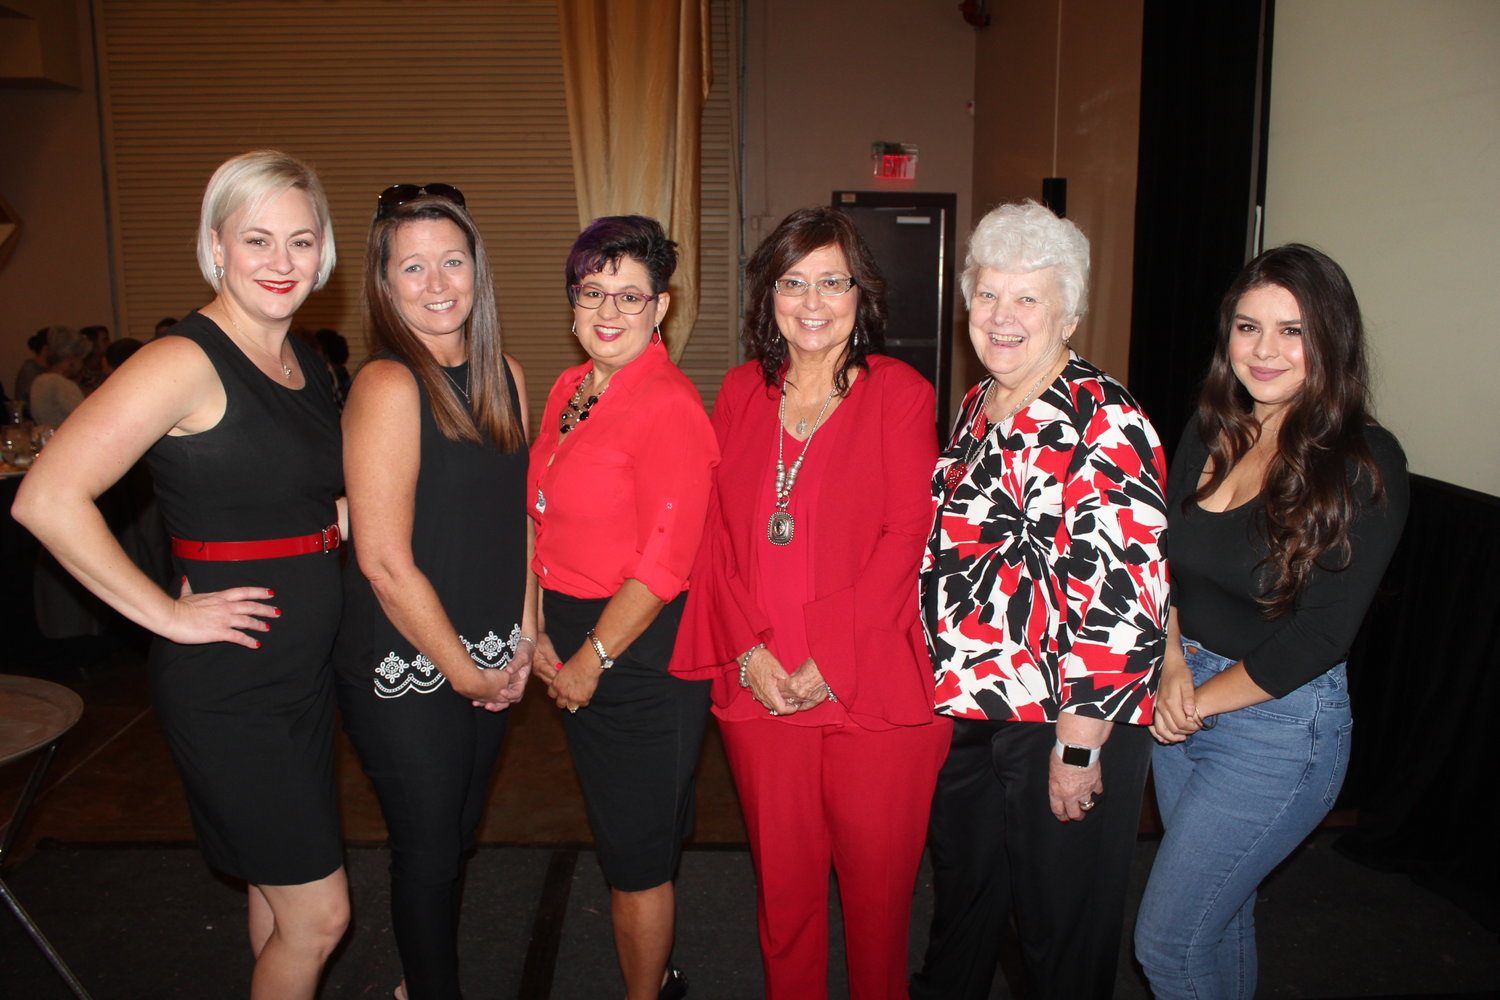 Sumer Rose-Nolen, Jennifer Bales, Jenn Baca, Cindy Torres, Wanda Bowman and Jazmine Rubio are part of Revolution 120, a group recognized by the Girl Scouts of the Desert Southwest with the inaugural Jo Tice Bloom award for its work helping families and groups in crisis. Not pictured is Revolution 120 director Marci Dickerson, who was helping to serve food at the luncheon.